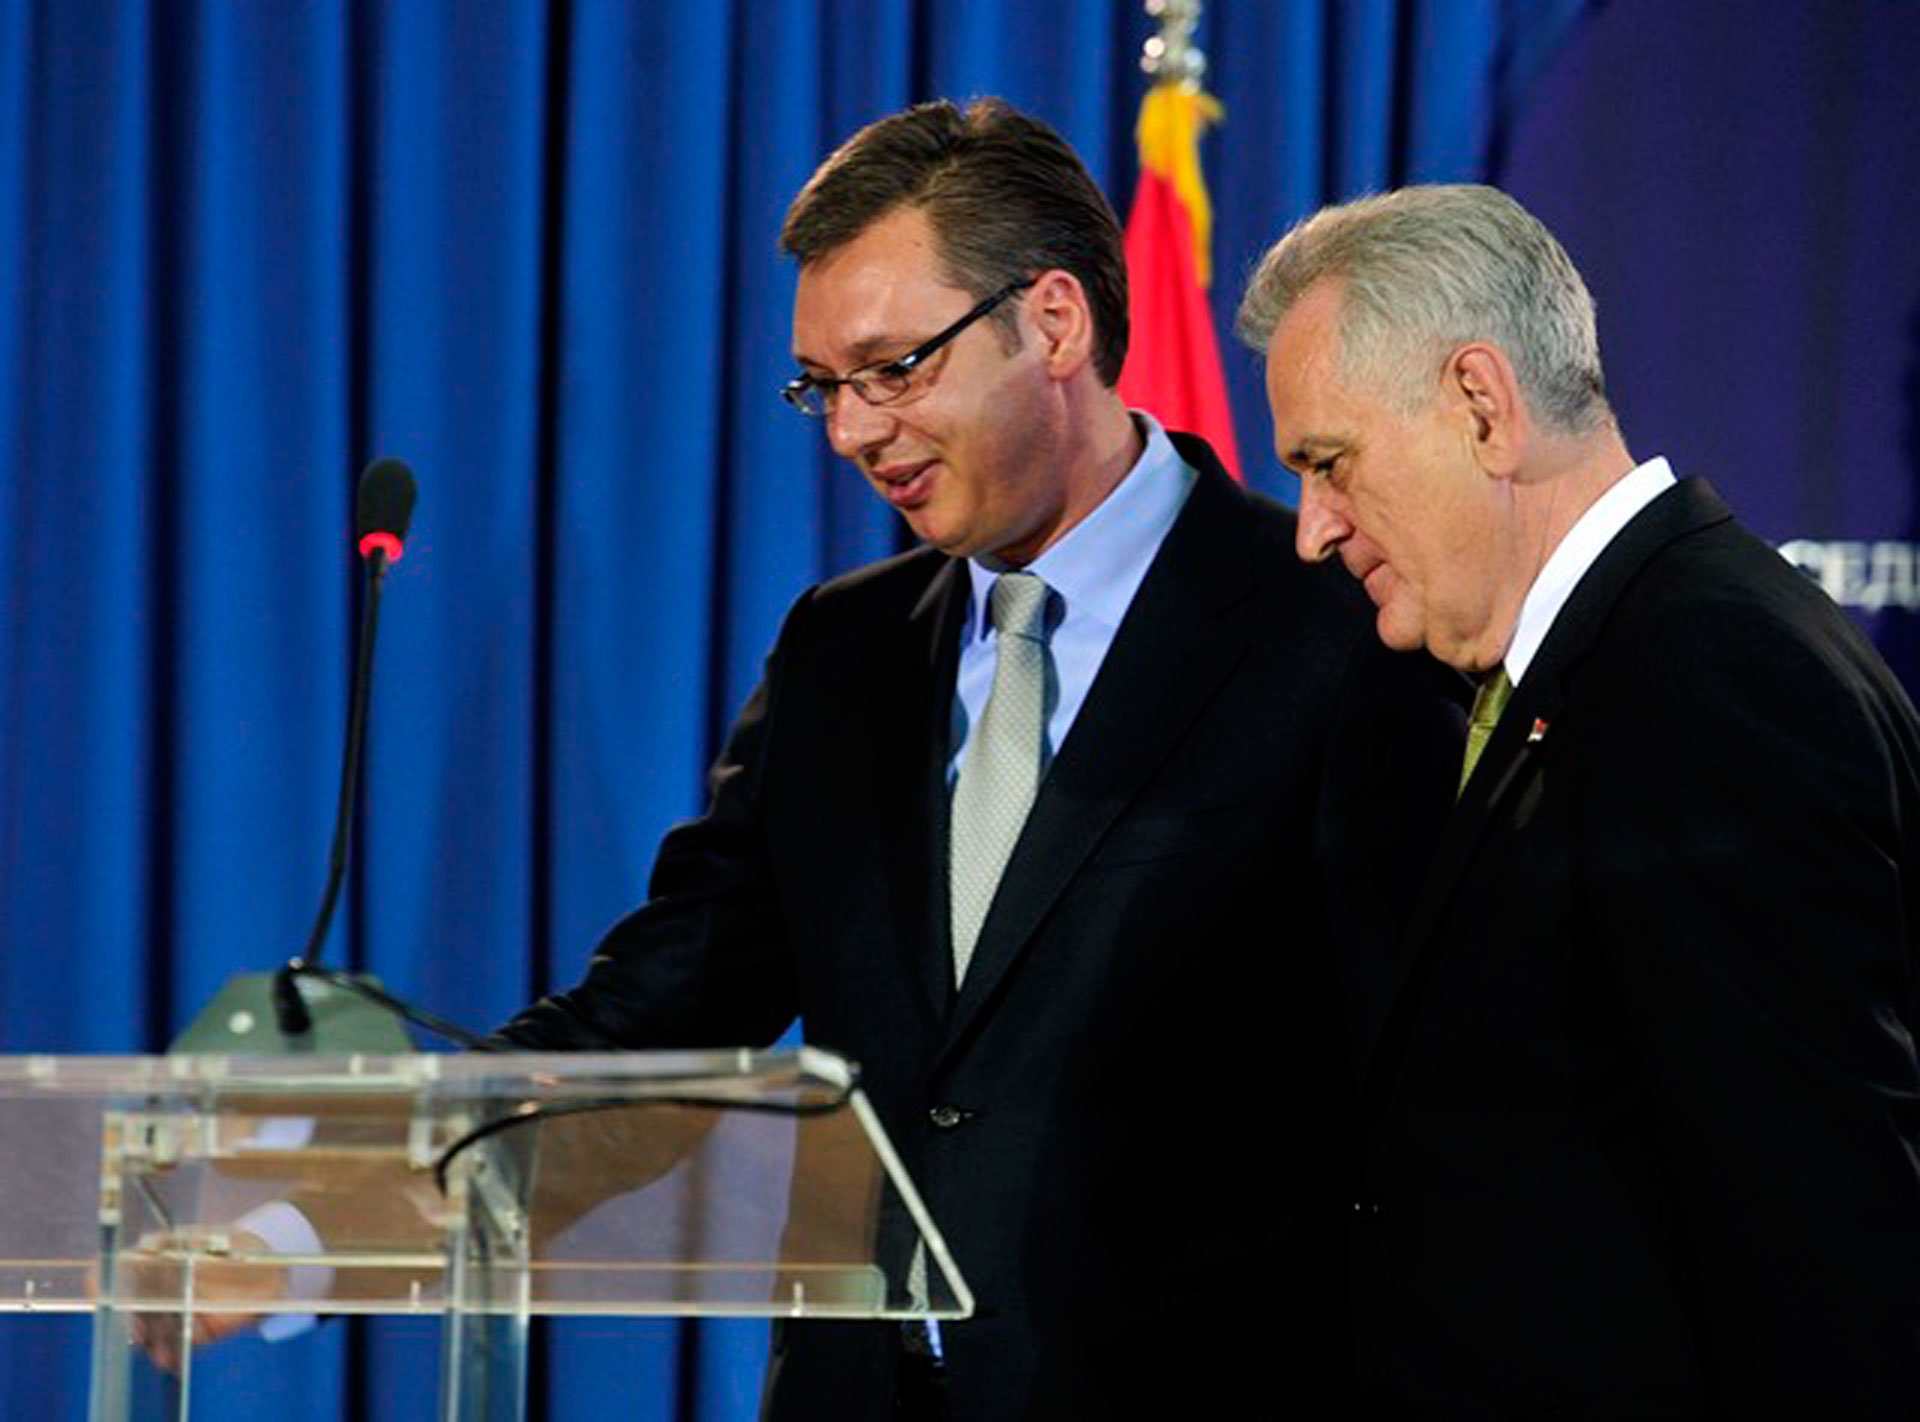 Vucic, Nikolic and their plans 'for the next 15 years'